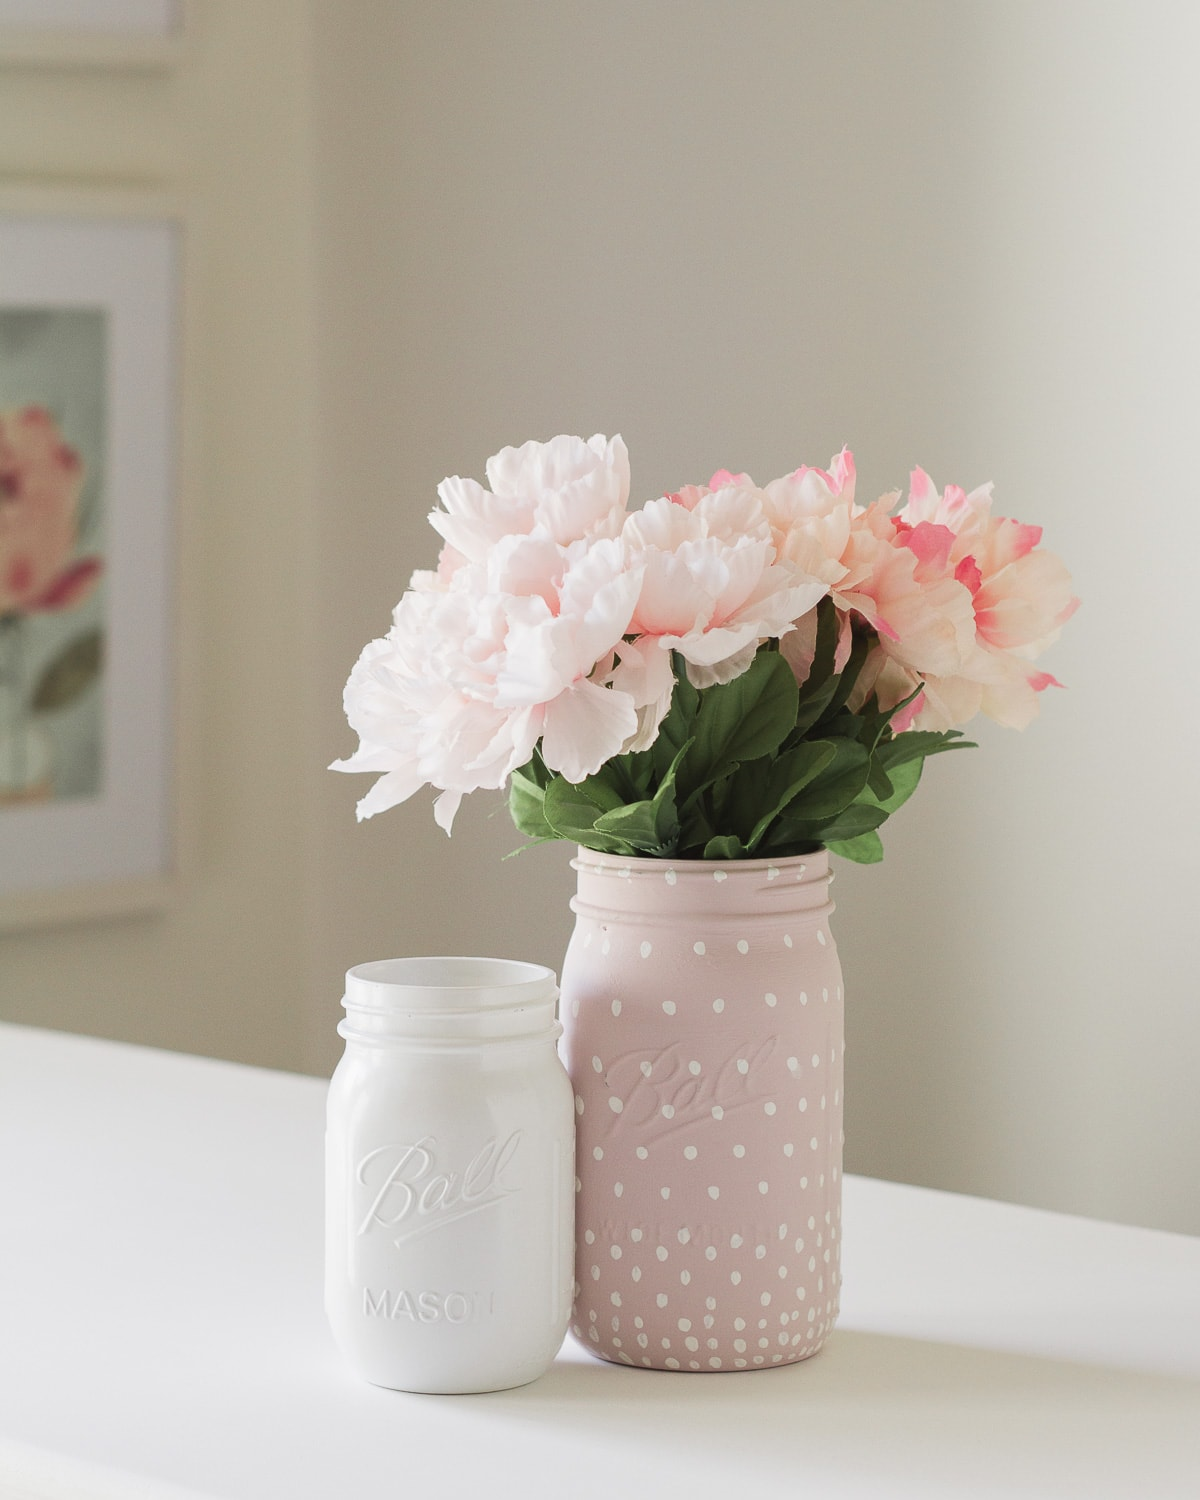 A white painted mason jar and a pink (with white polka dots) mason jar with flowers inside.